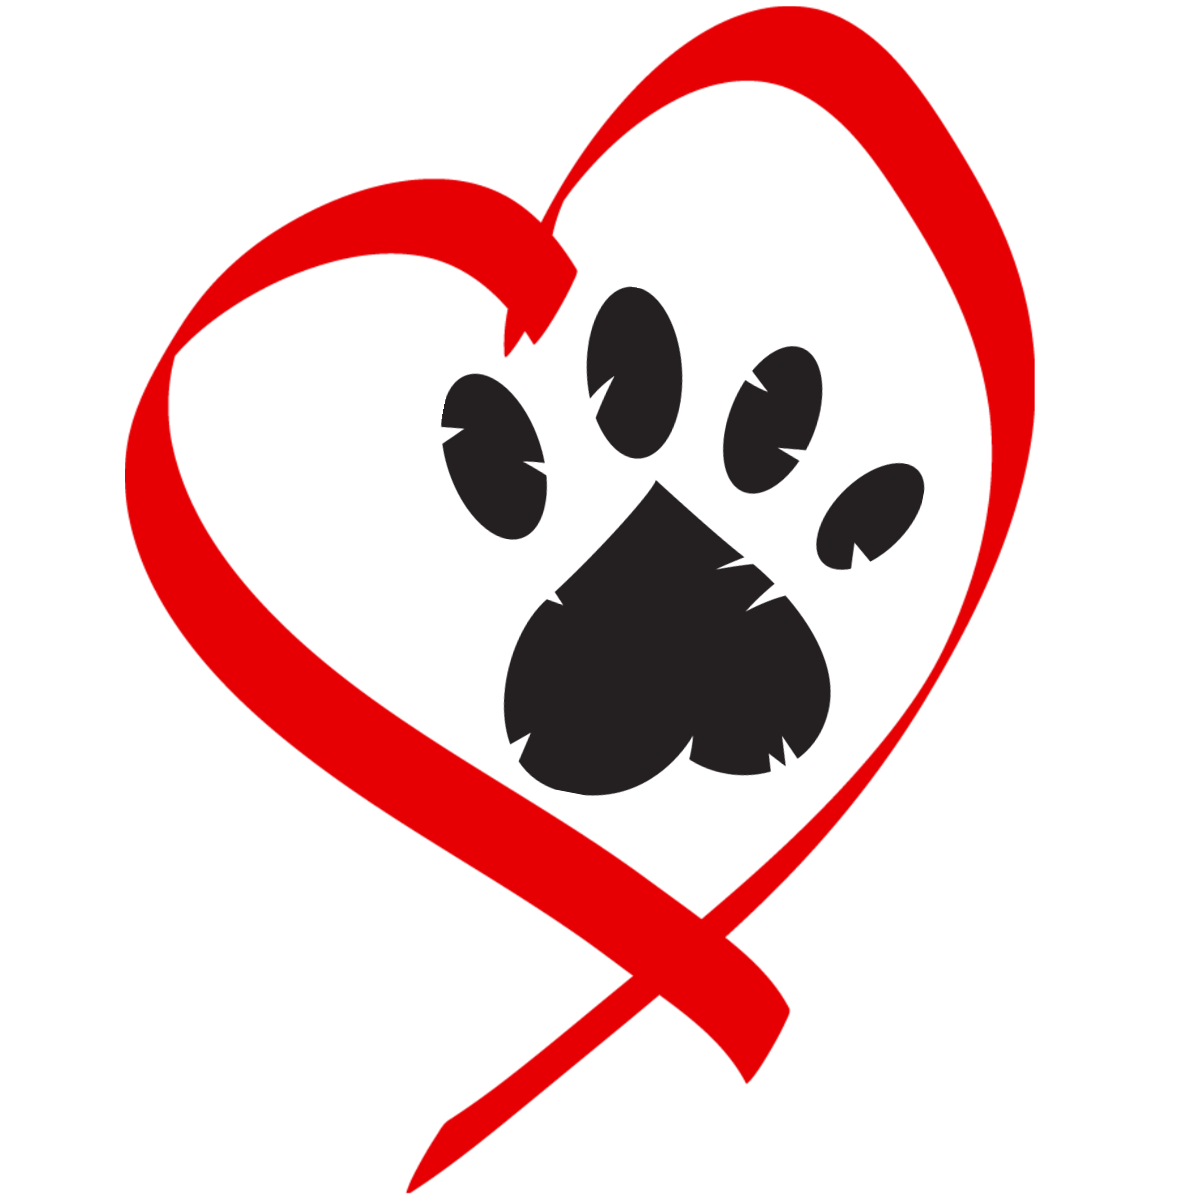 Paw clip art heart shaped. Best photos of dog